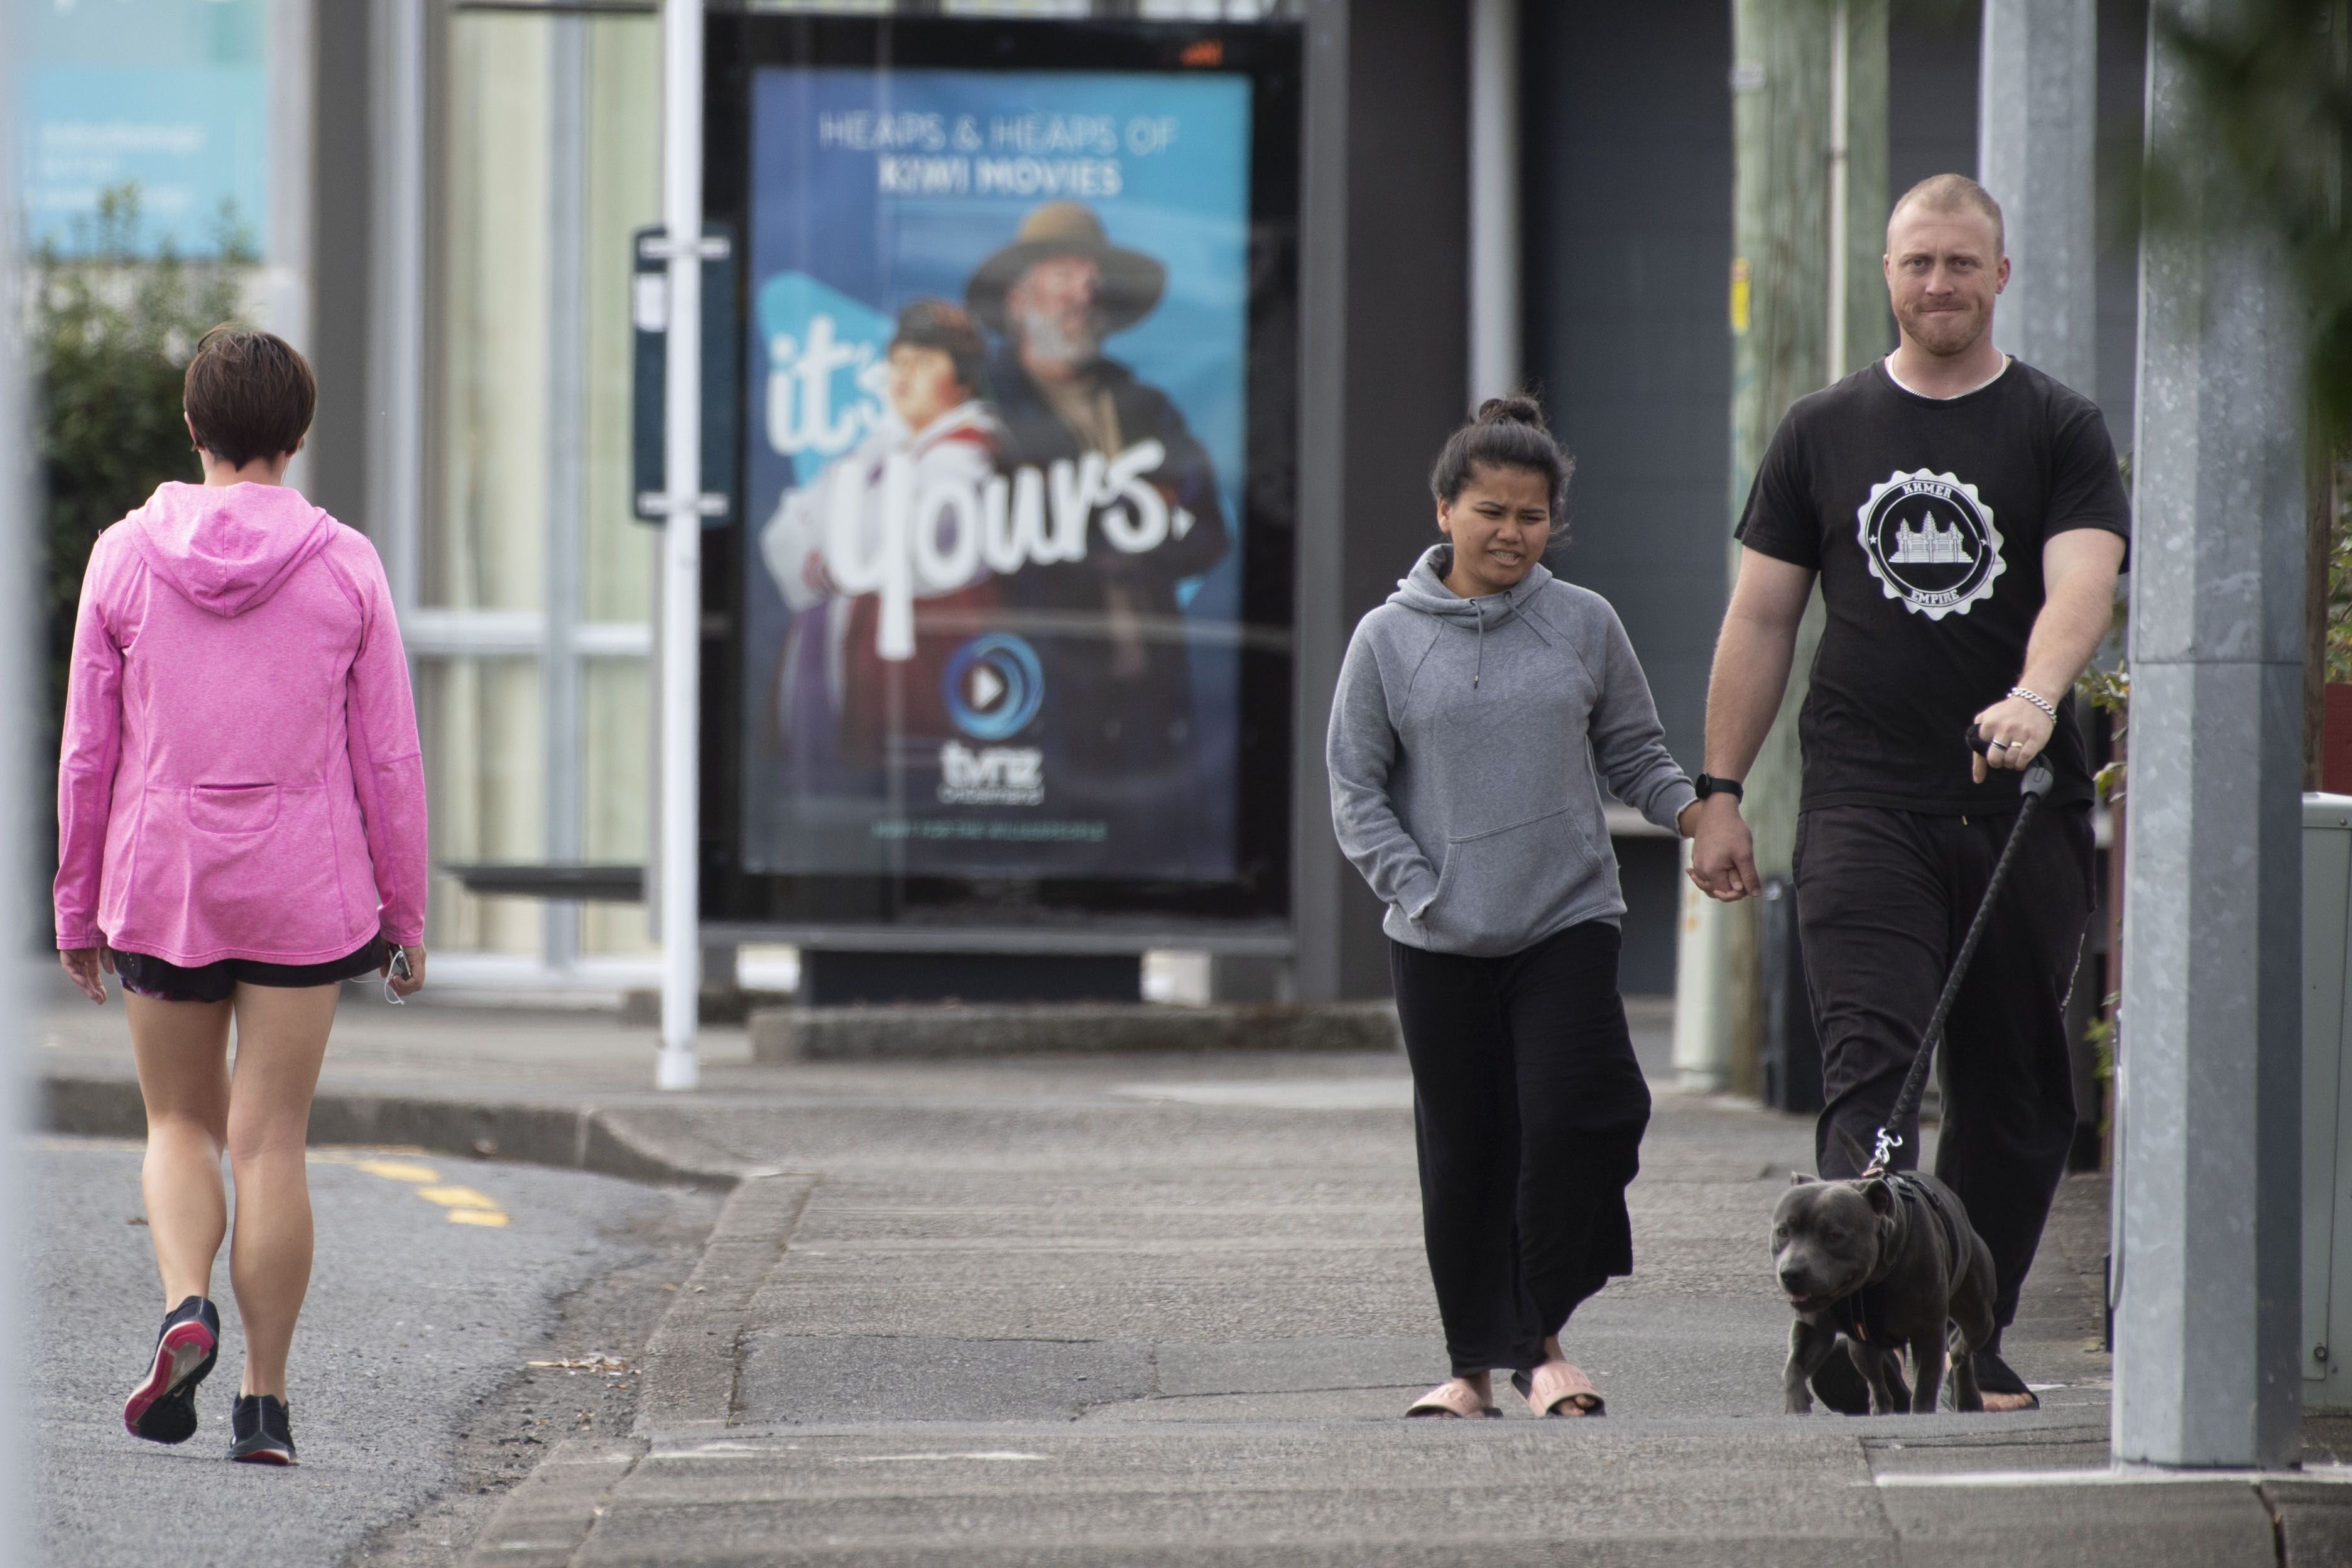 Pedestrians practise social distancing in response to the COVID-19 coronavirus outbreak along a street of Lower Hutt, near Wellington, on April 20, 2020. - New Zealand will ease a nationwide COVID-19 lockdown next week after claiming success in stopping